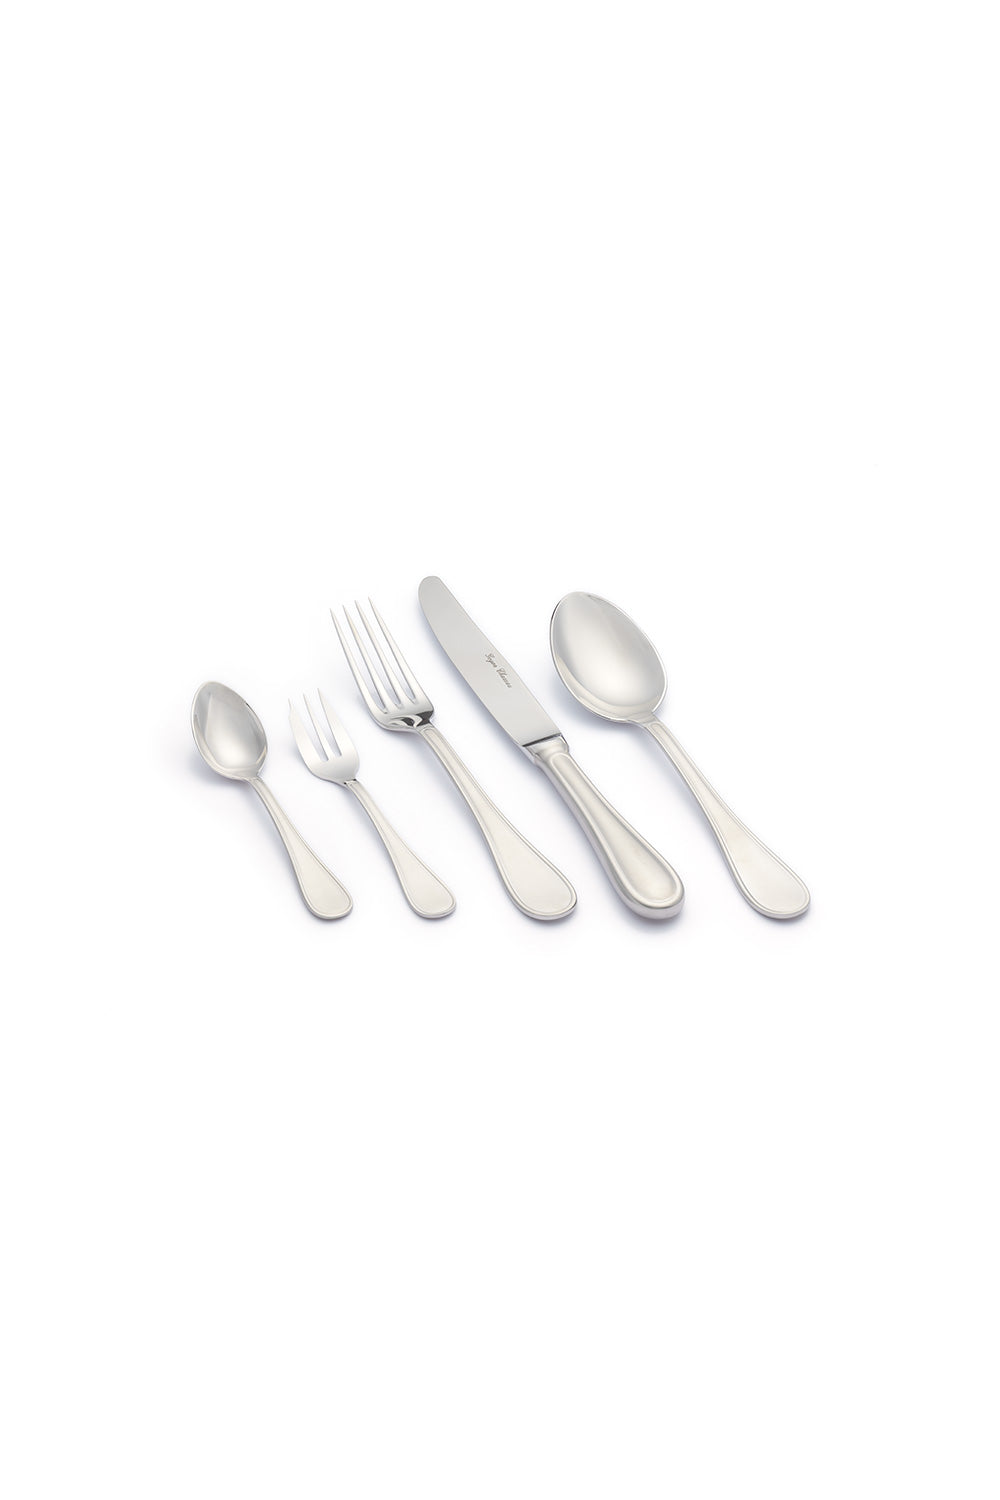 Cottage collection stainless steel flatware set, classic and timeless, handmade in France